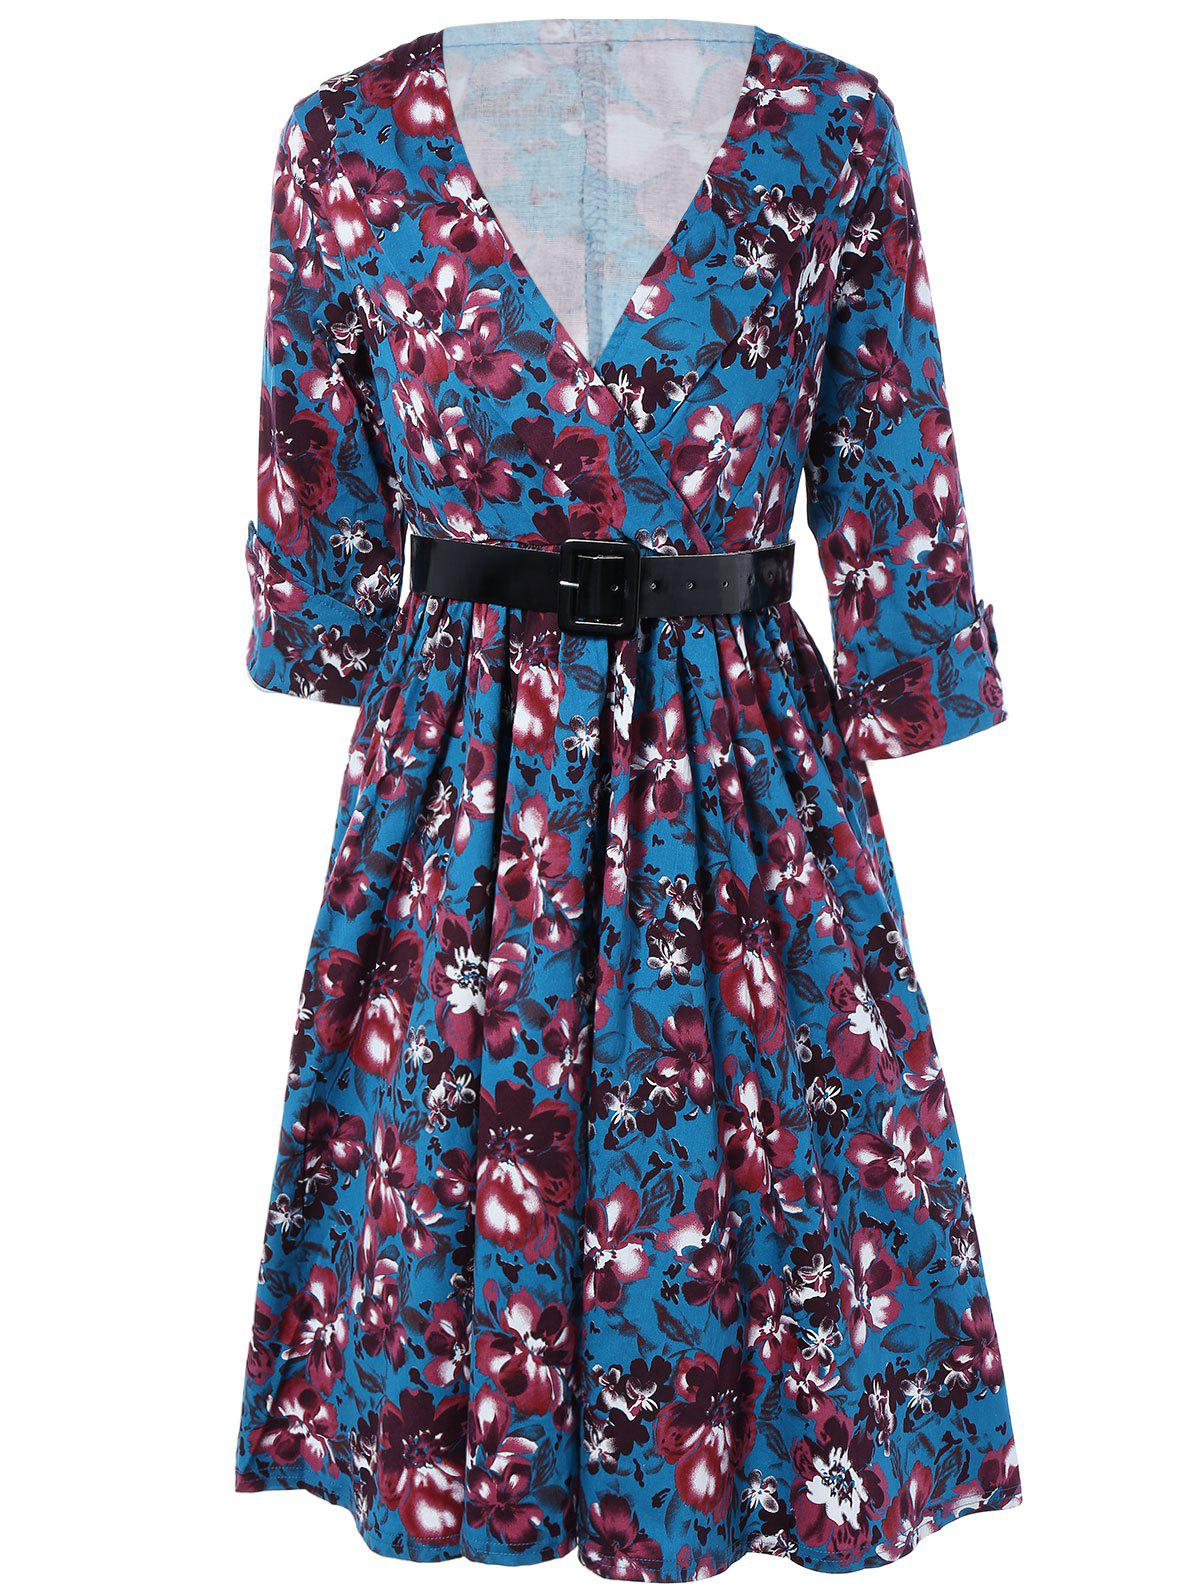 Retro Style Cuffed Sleeve Belted Floral Dress For Women - BLUE 2XL